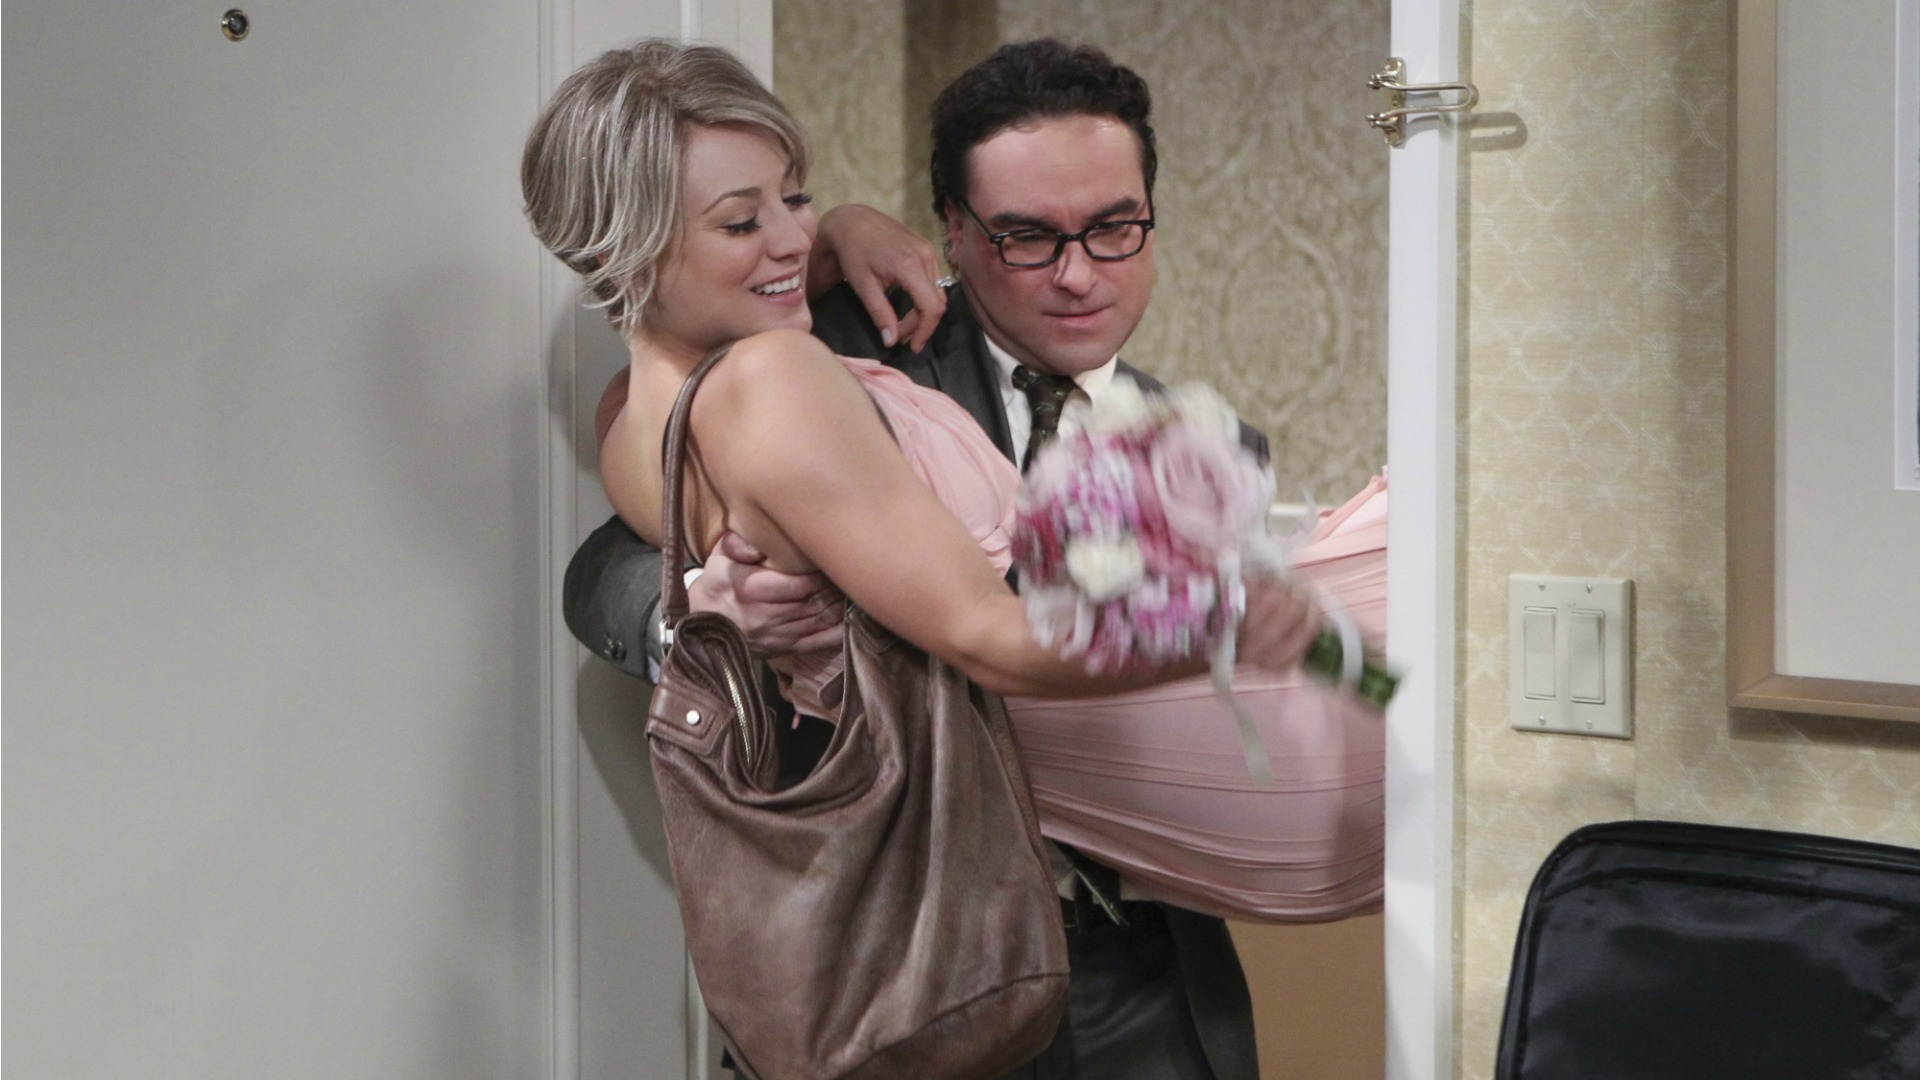 1. We cried when Penny and Leonard celebrated their impromptu elopement